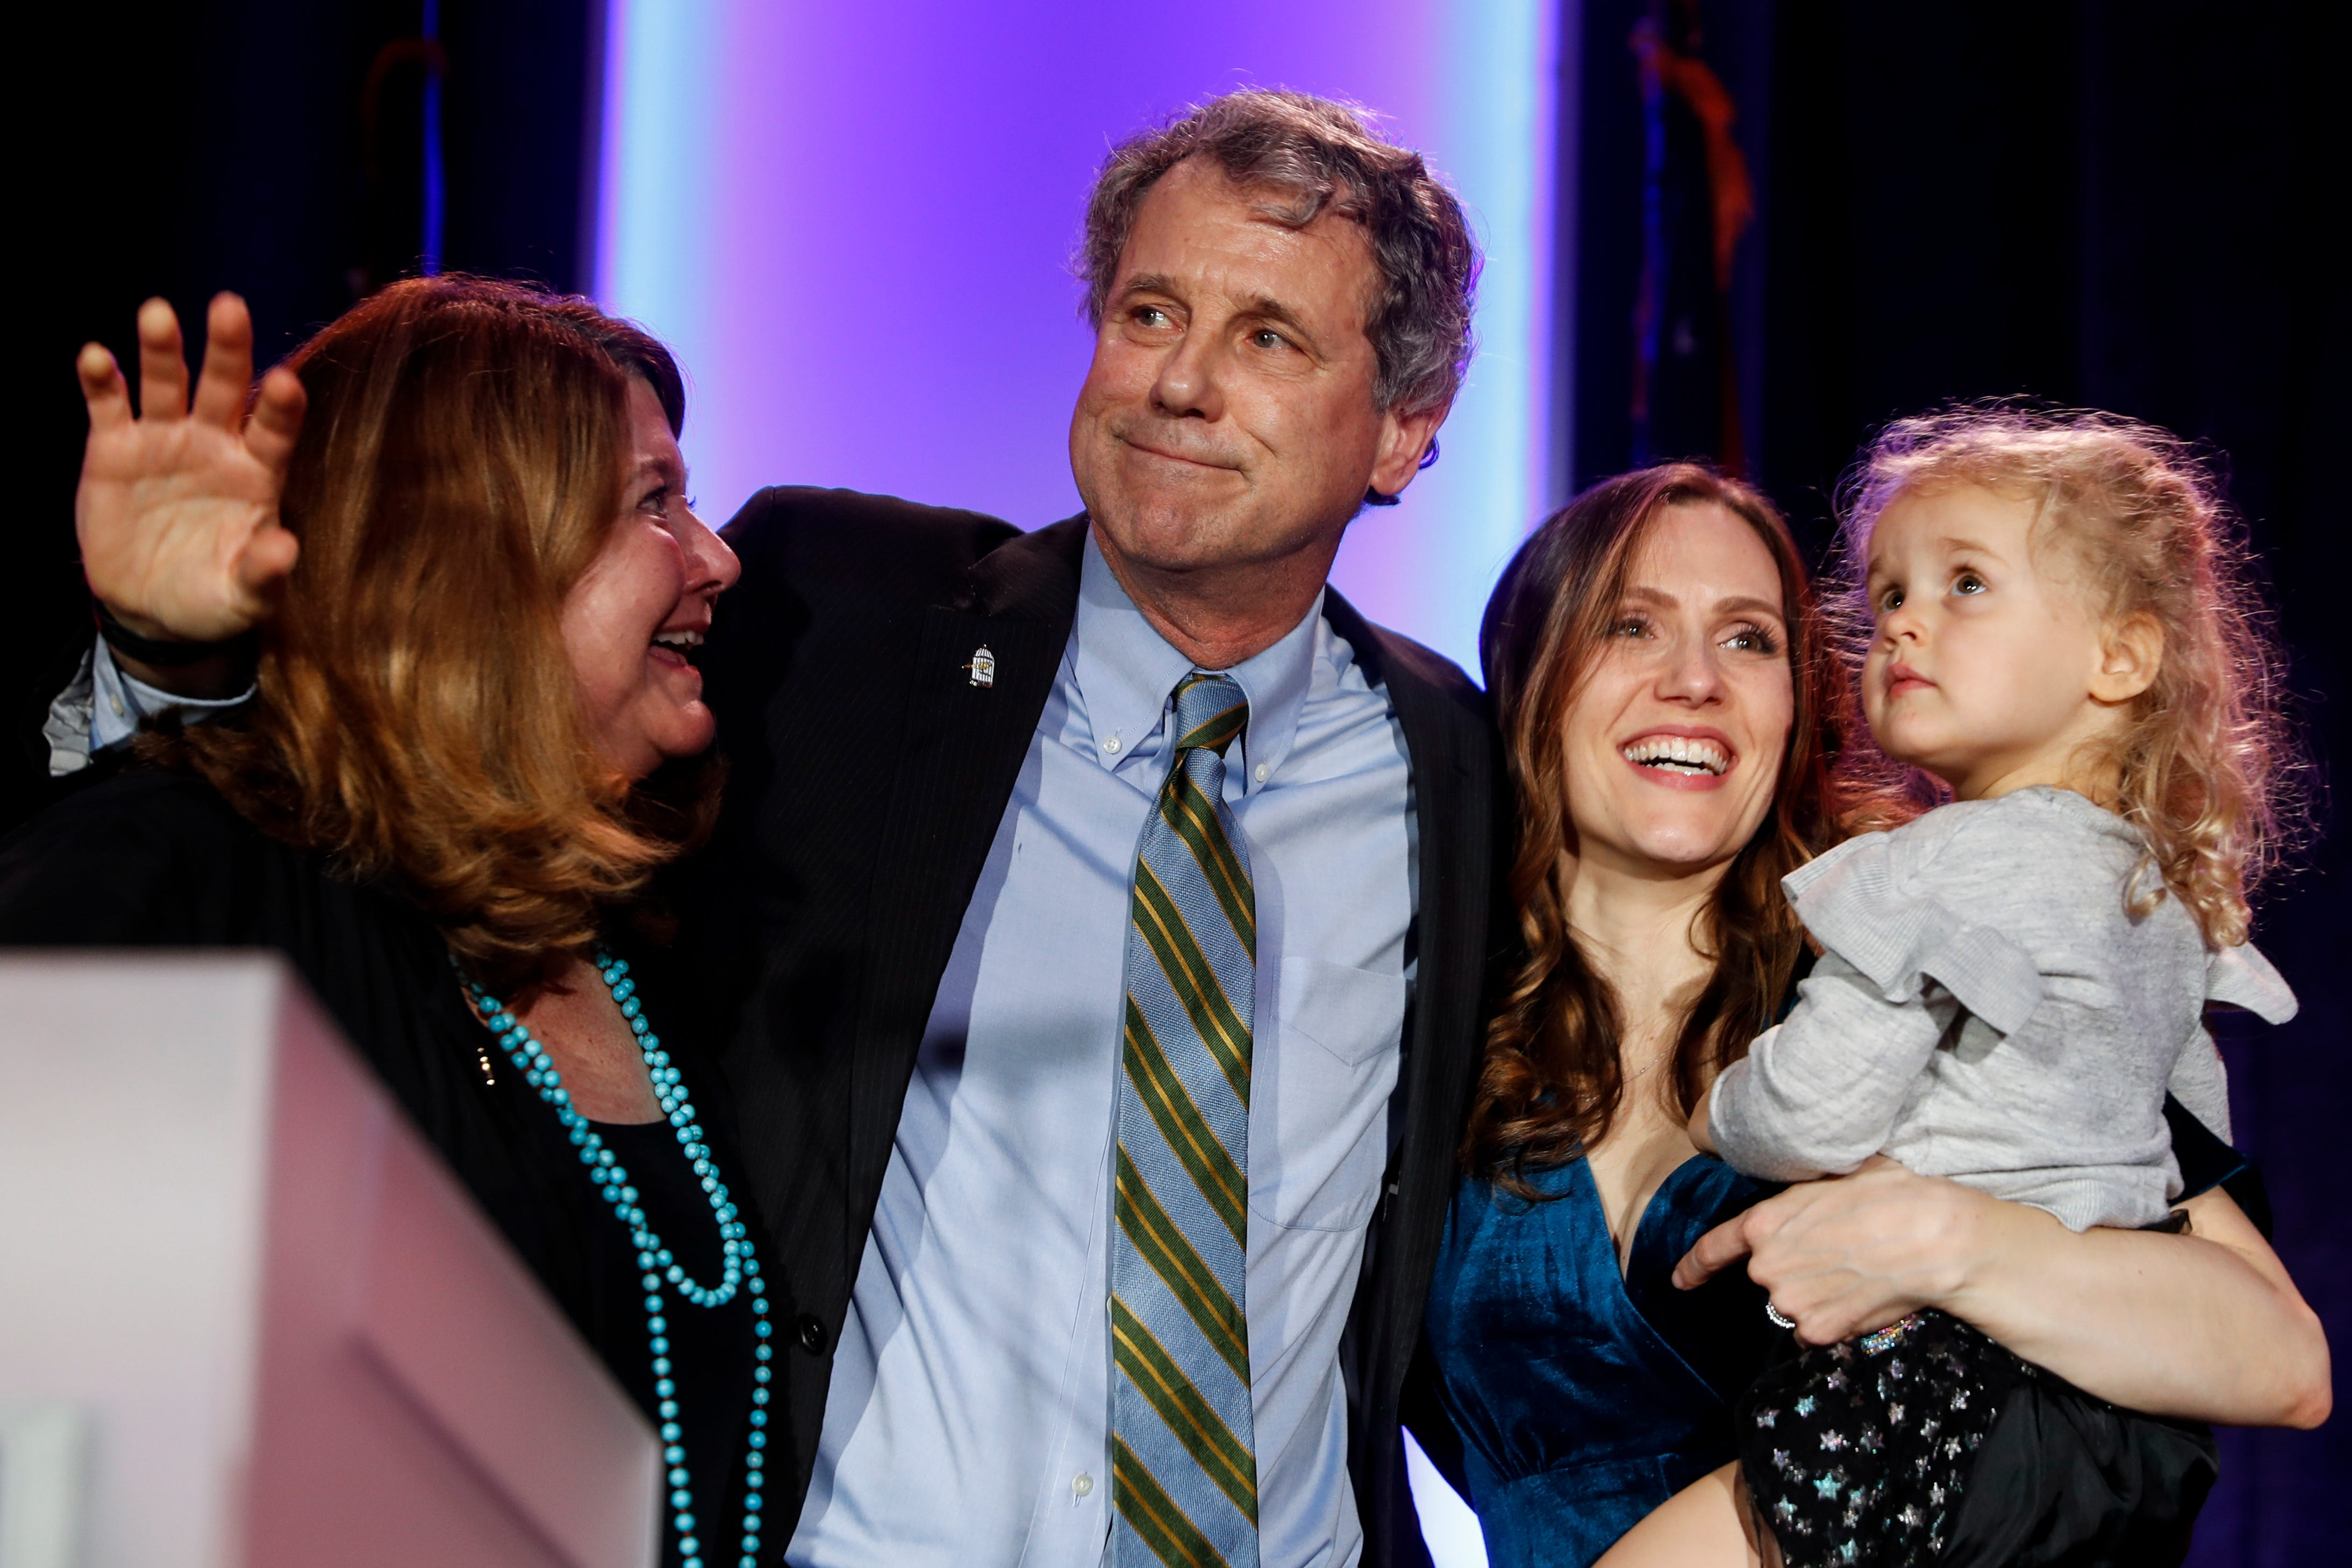 Sen. Sherrod Brown, D-Ohio, hugs his family after speaking to the crowd after winning his reelection bid during the Ohio Democratic Party election night watch party, Tuesday, Nov. 6, 2018, in Columbus, Ohio. (AP Photo/John Minchillo)